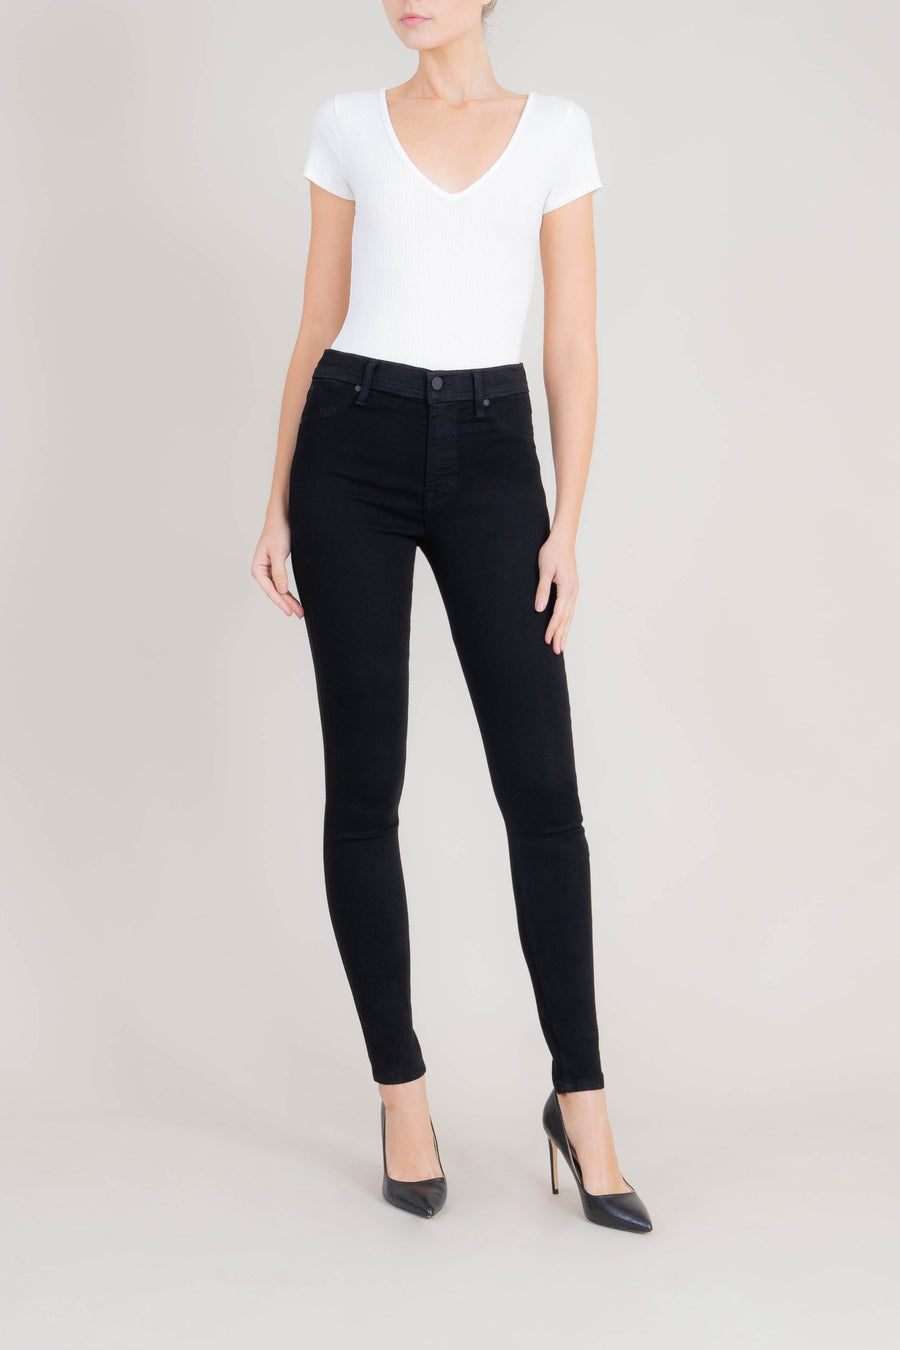 Tanya High Rise Ultra Skinny - level99jeans